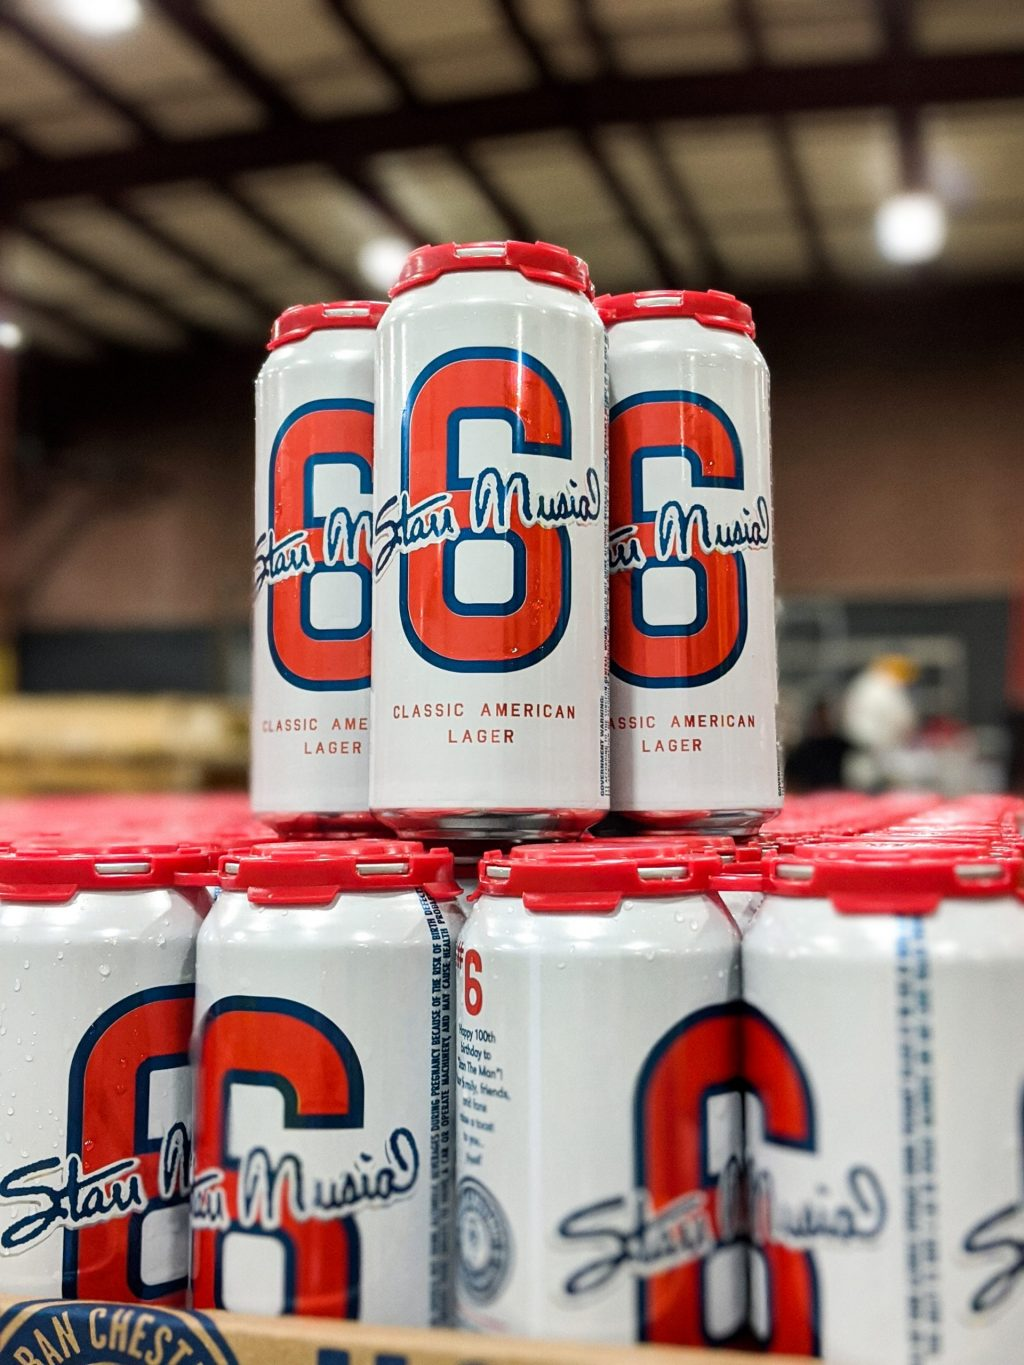 UCBC honors and celebrates Stan Musial with a special, commemorative beer - #6 Classic American Lager